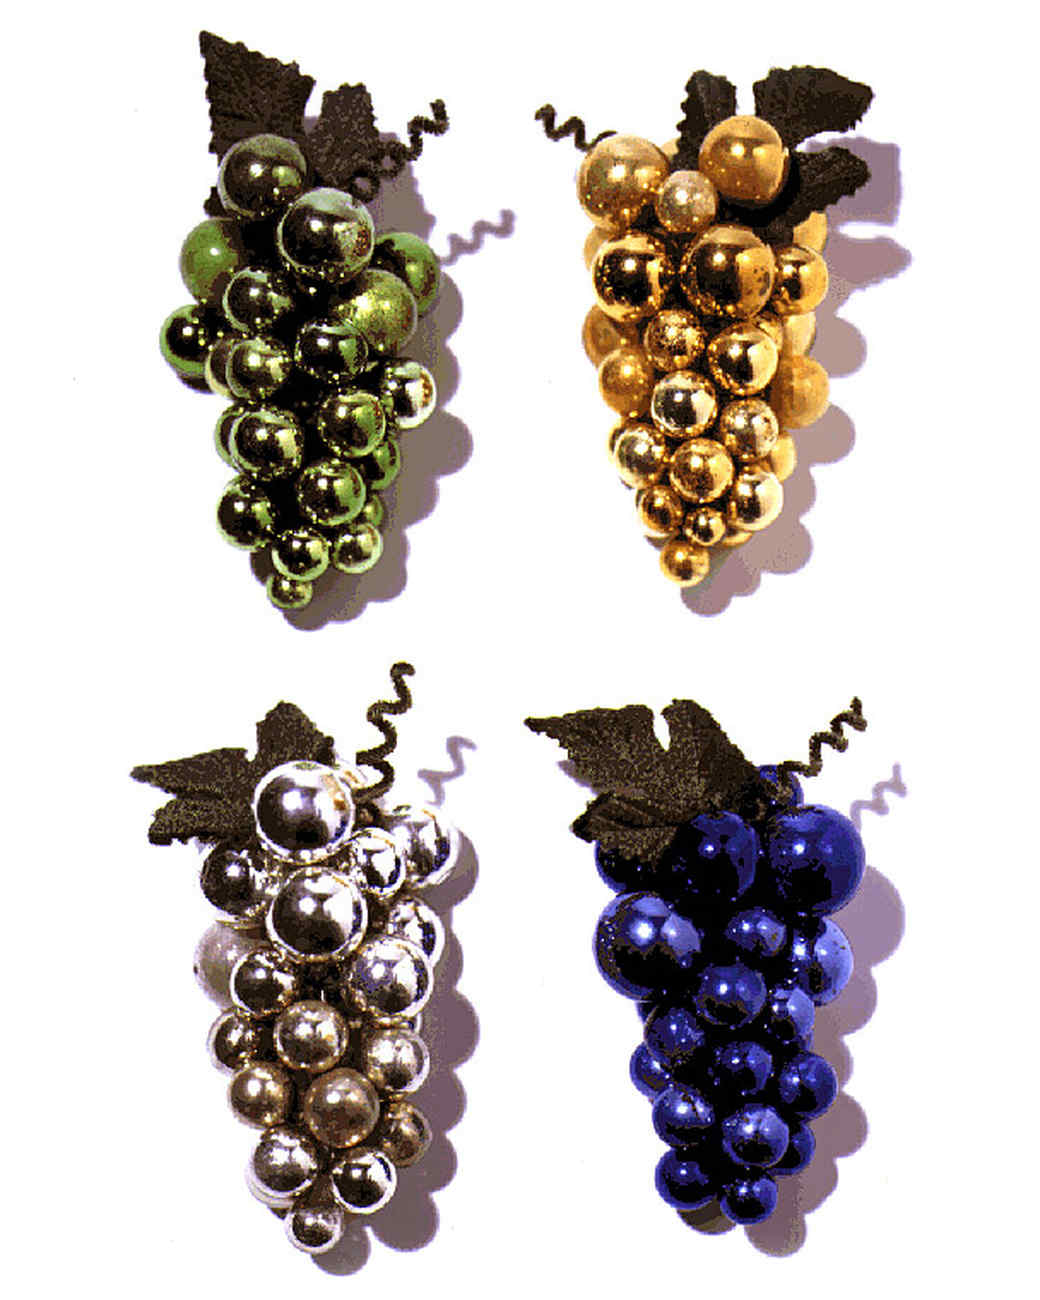 Grape Ornaments